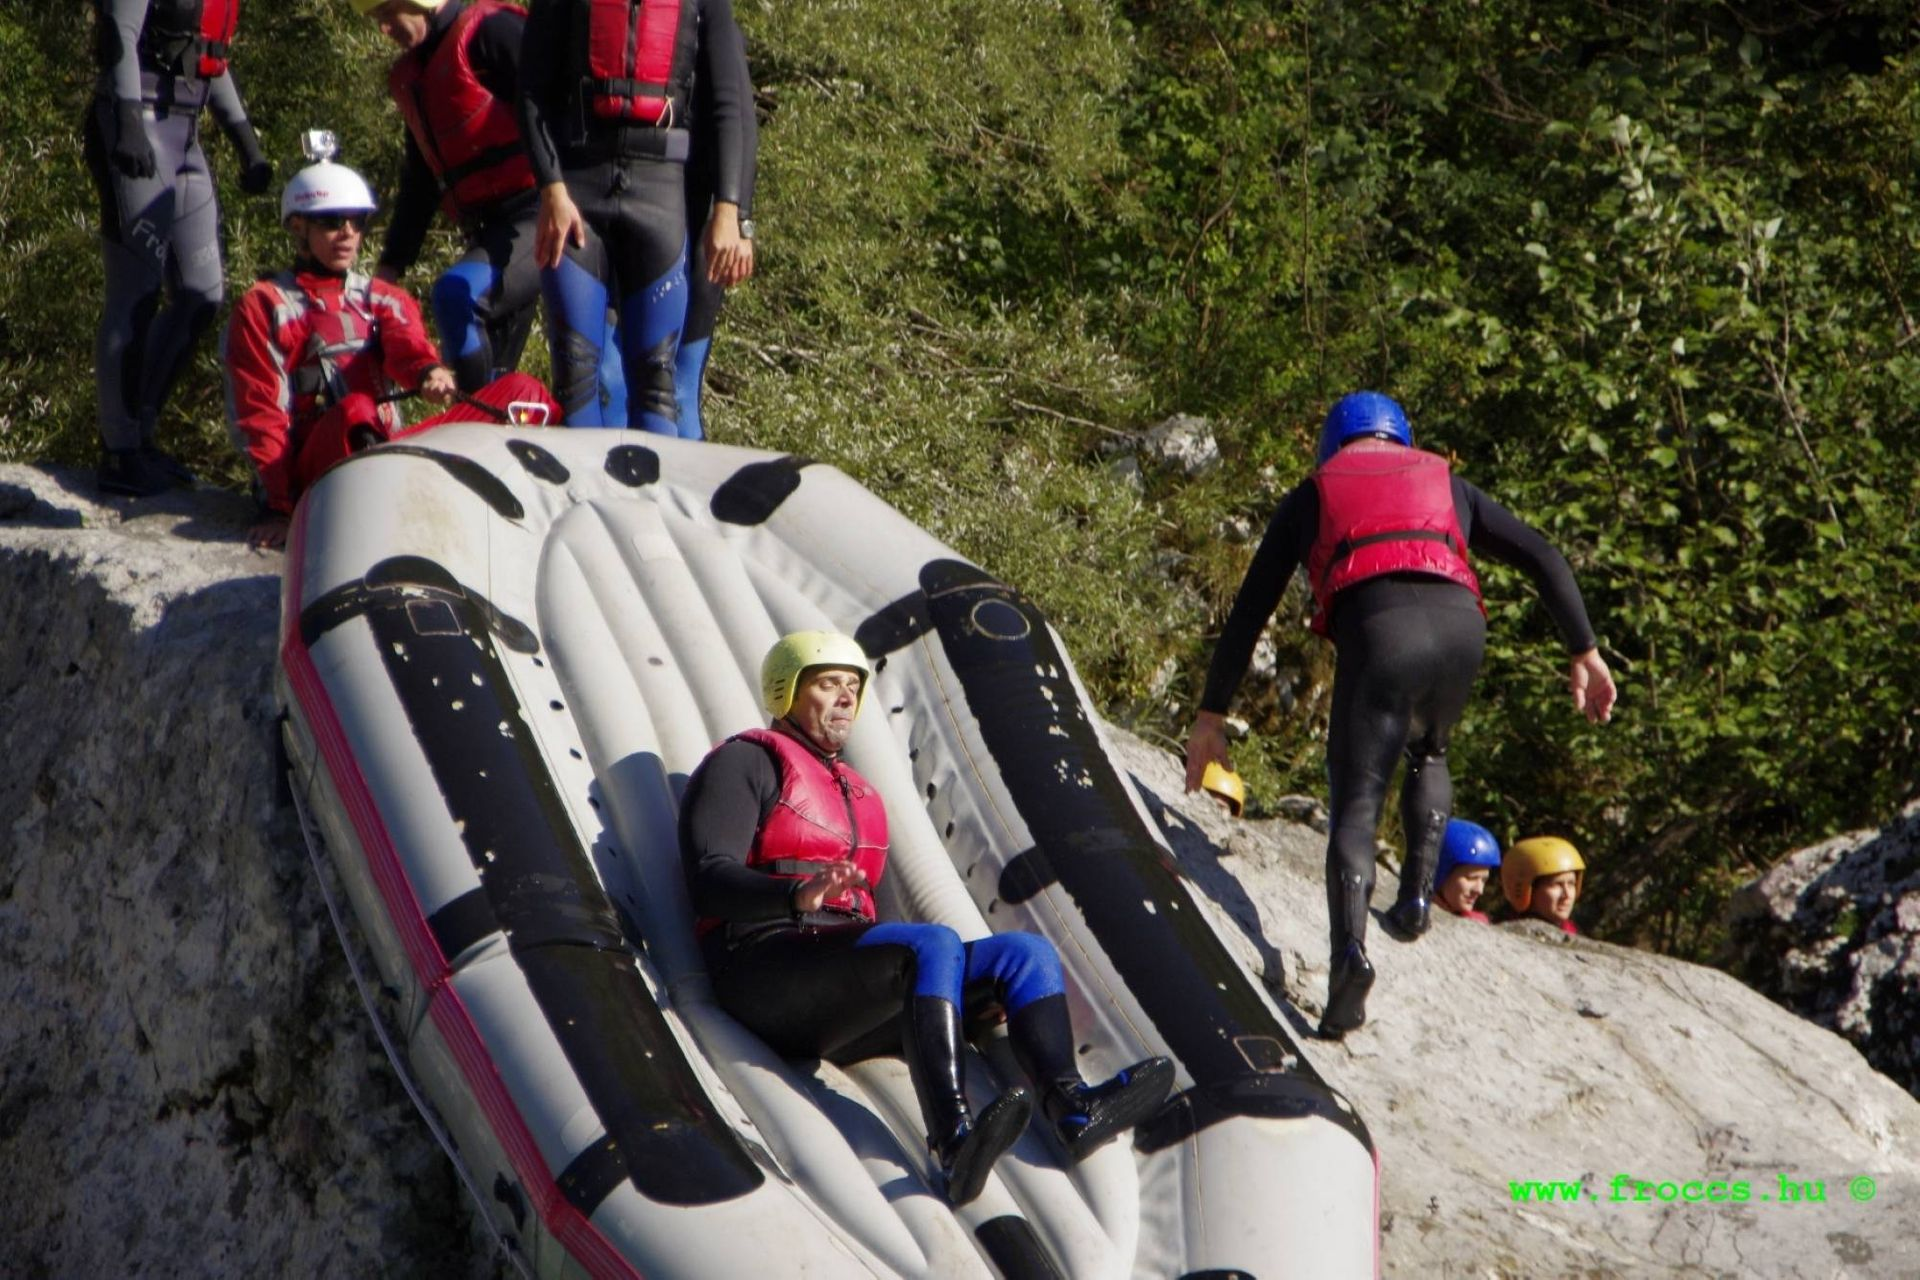 Rafting package on Soca (2 trips) Bovec, Slovenia #ee1d9dce-926f-4c64-becf-1d875ad89981